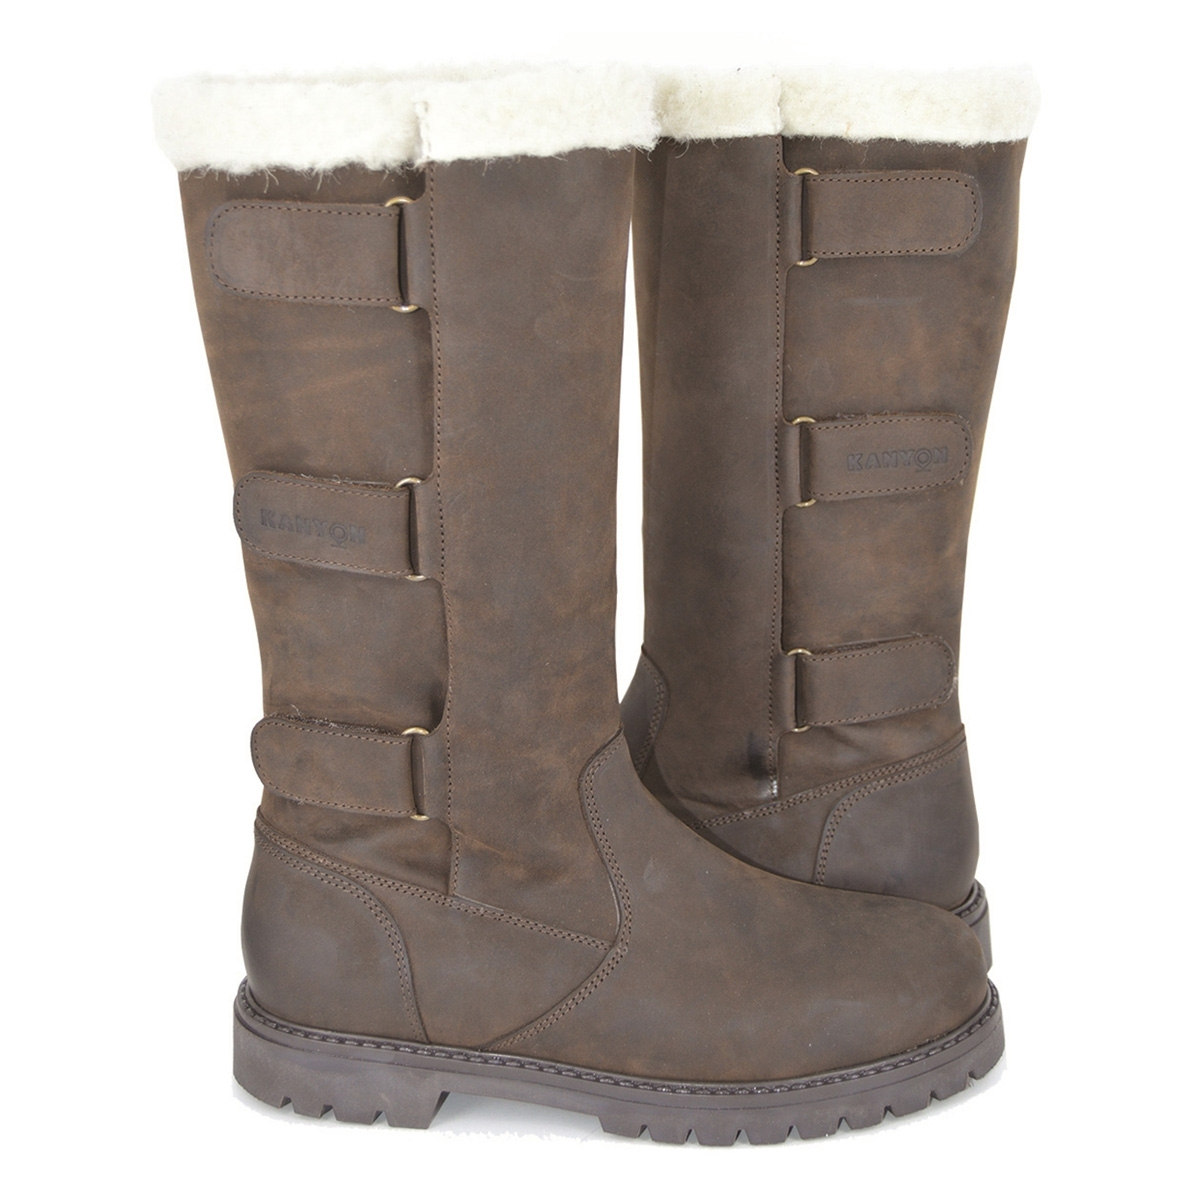 Image of Kanyon Outdoor Wisteria Wool Lined Waterproof Country Boots ( Women s) - Brown Leather 819236ec22